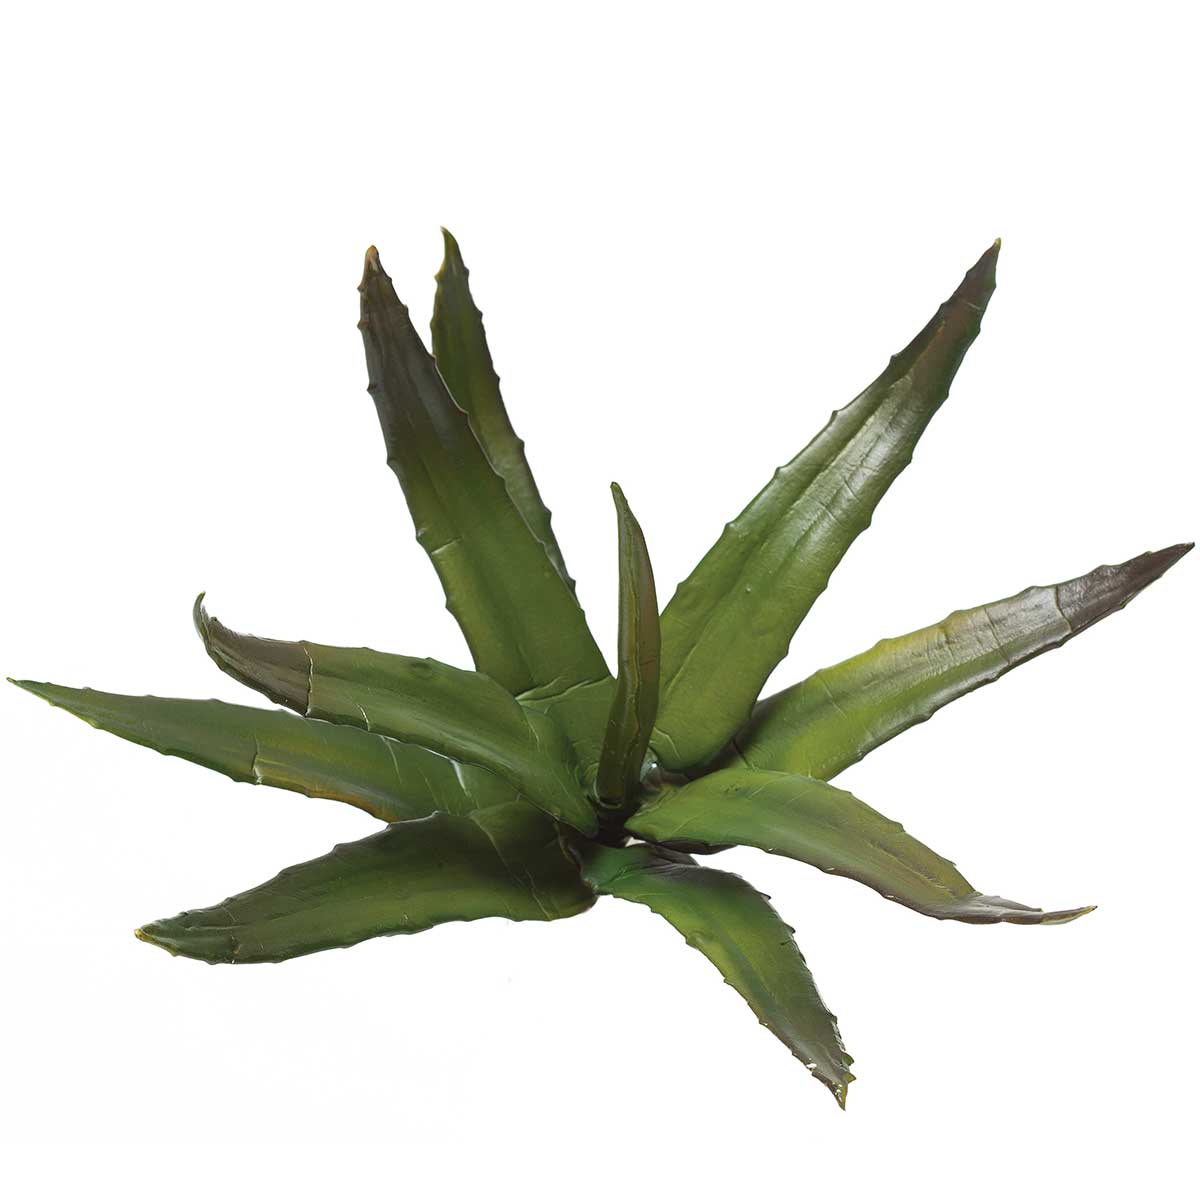 "M8400 AGAVE PLANT 9 LEAVES 9"" - EACH"